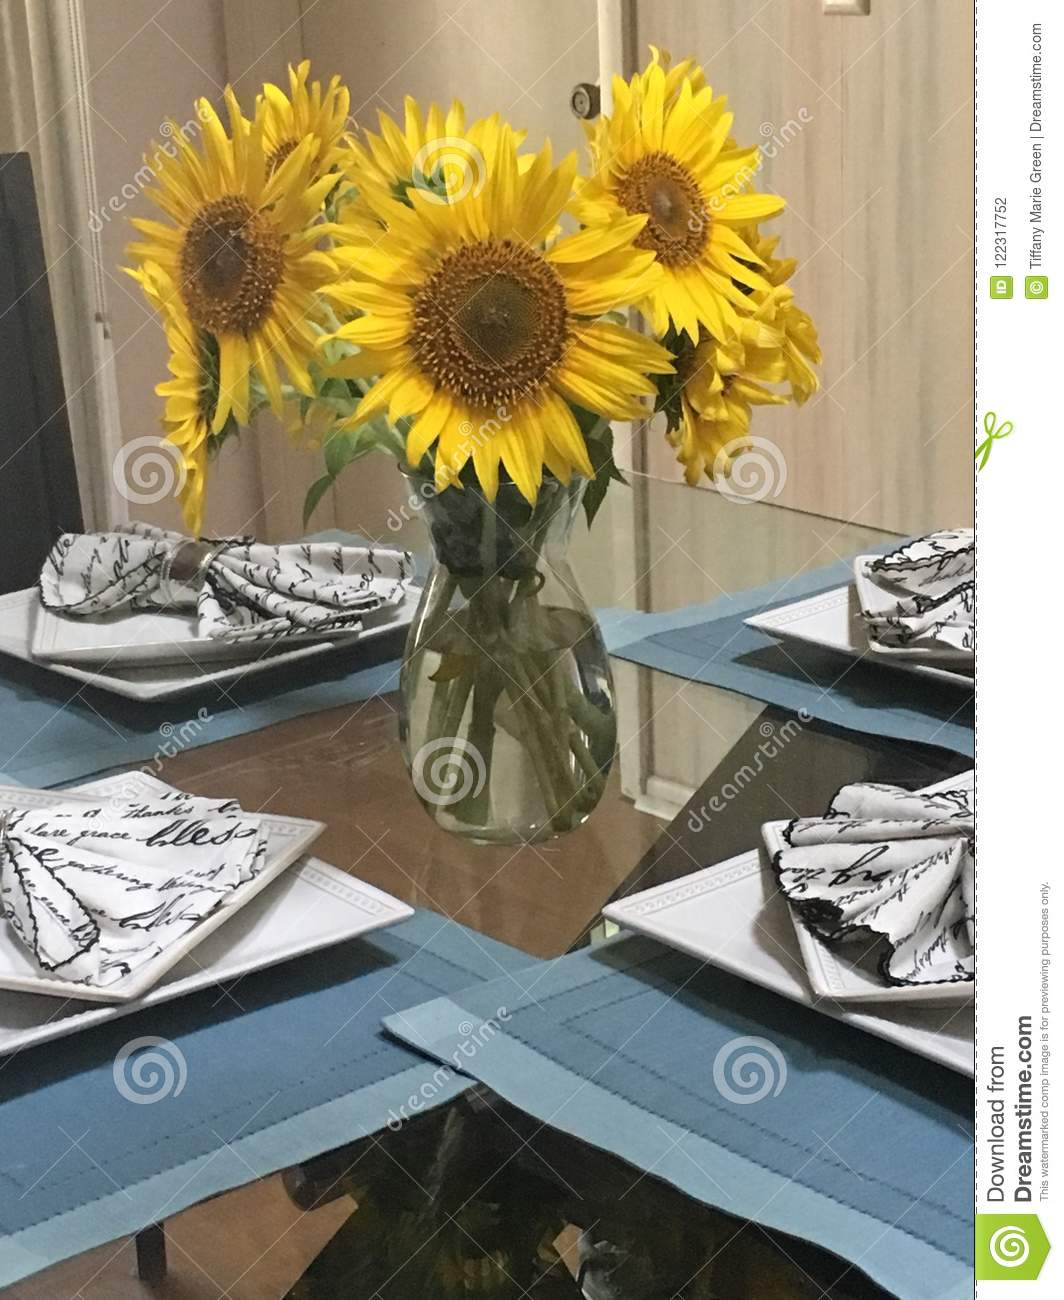 The Beautiful Vase Of Flowers Stock Photo Image Of Centerpiece Sunflowers 122317752